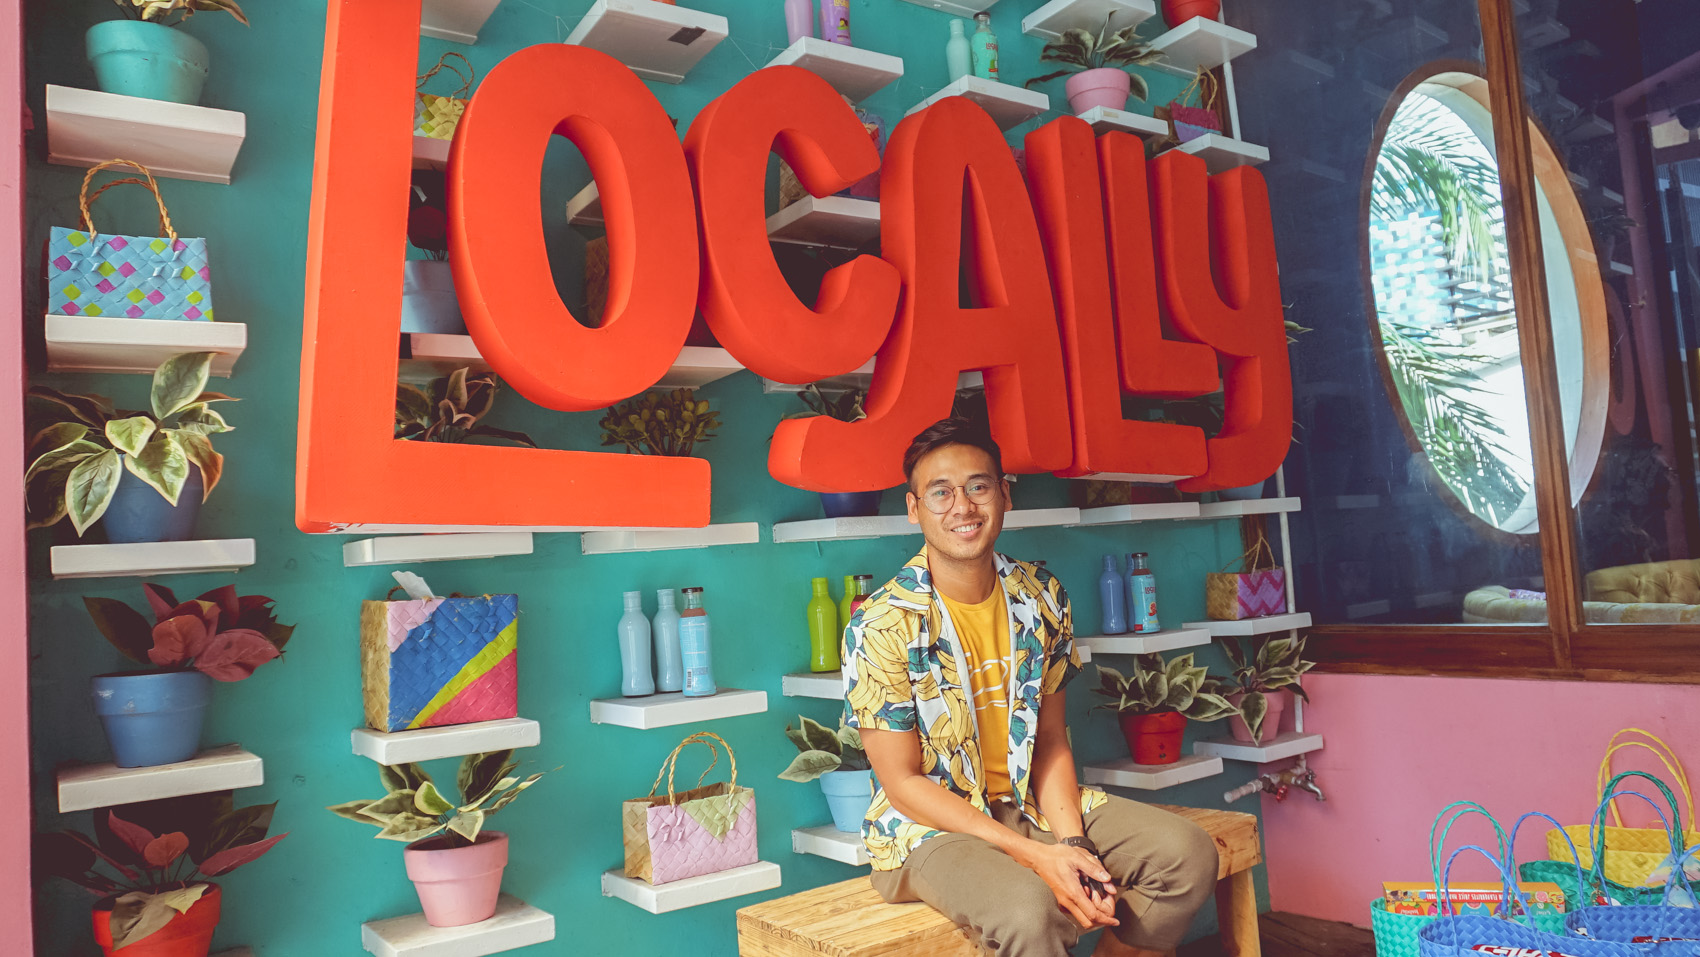 Locally, this brand hits the market highlighting Pinoy ...